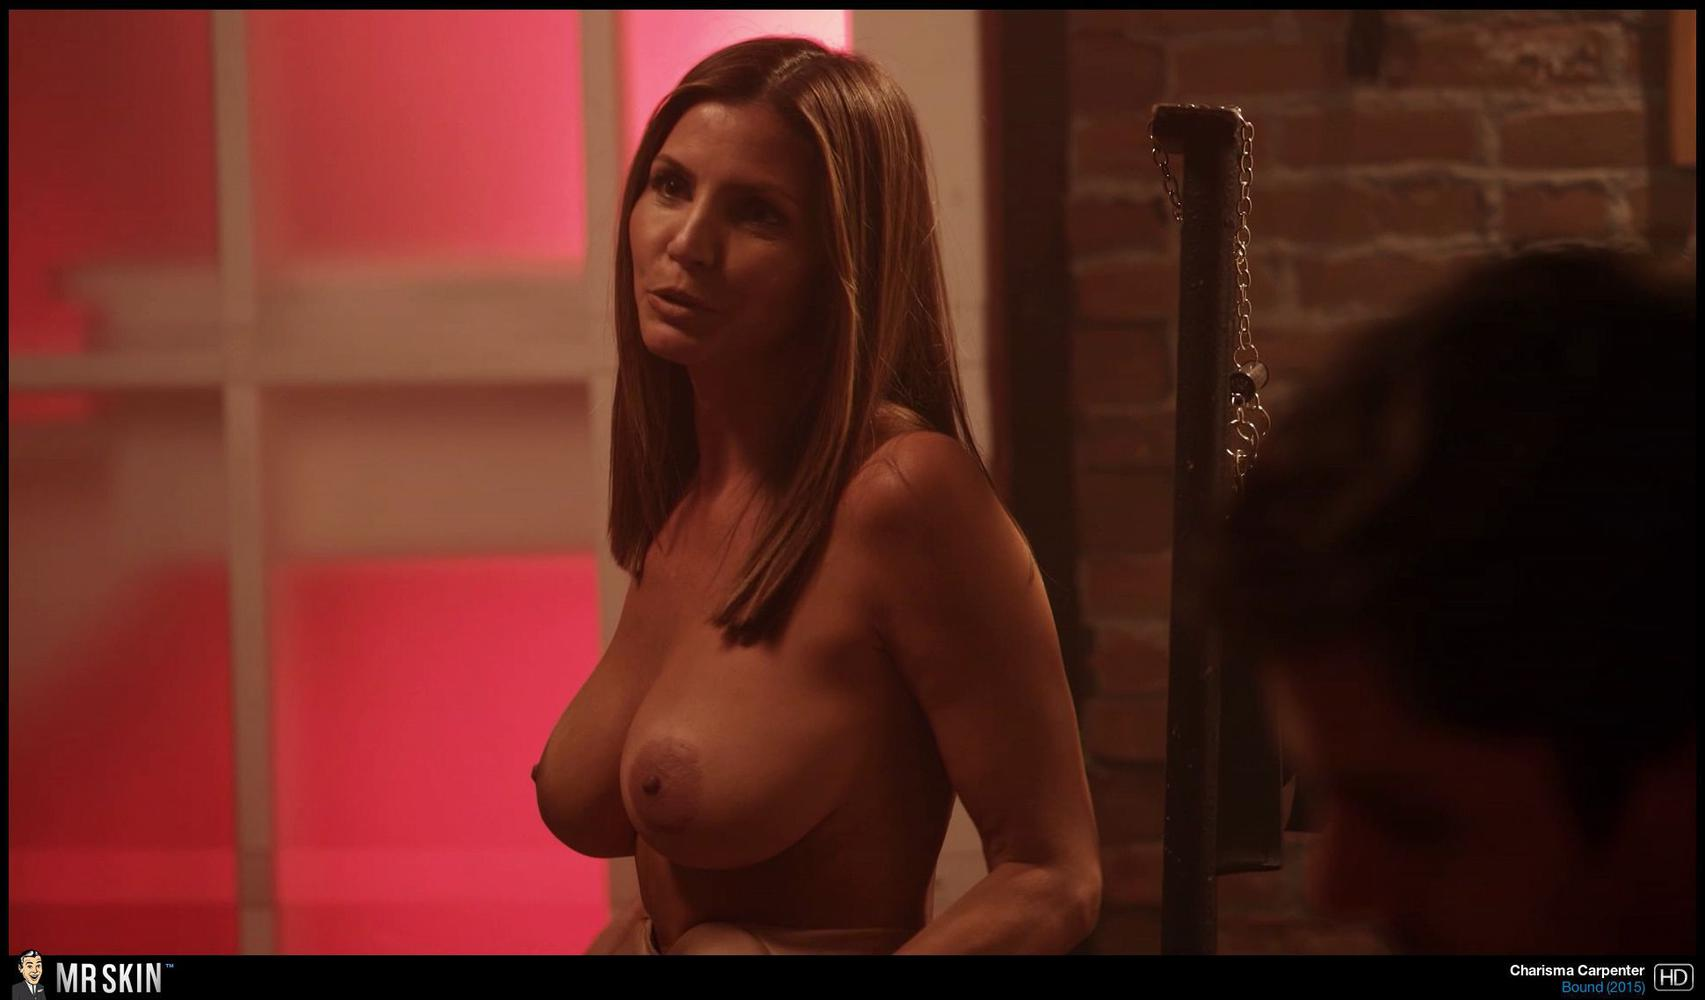 All Good Things Nude Scene skinstant video selections: shameless, bound, room in rome